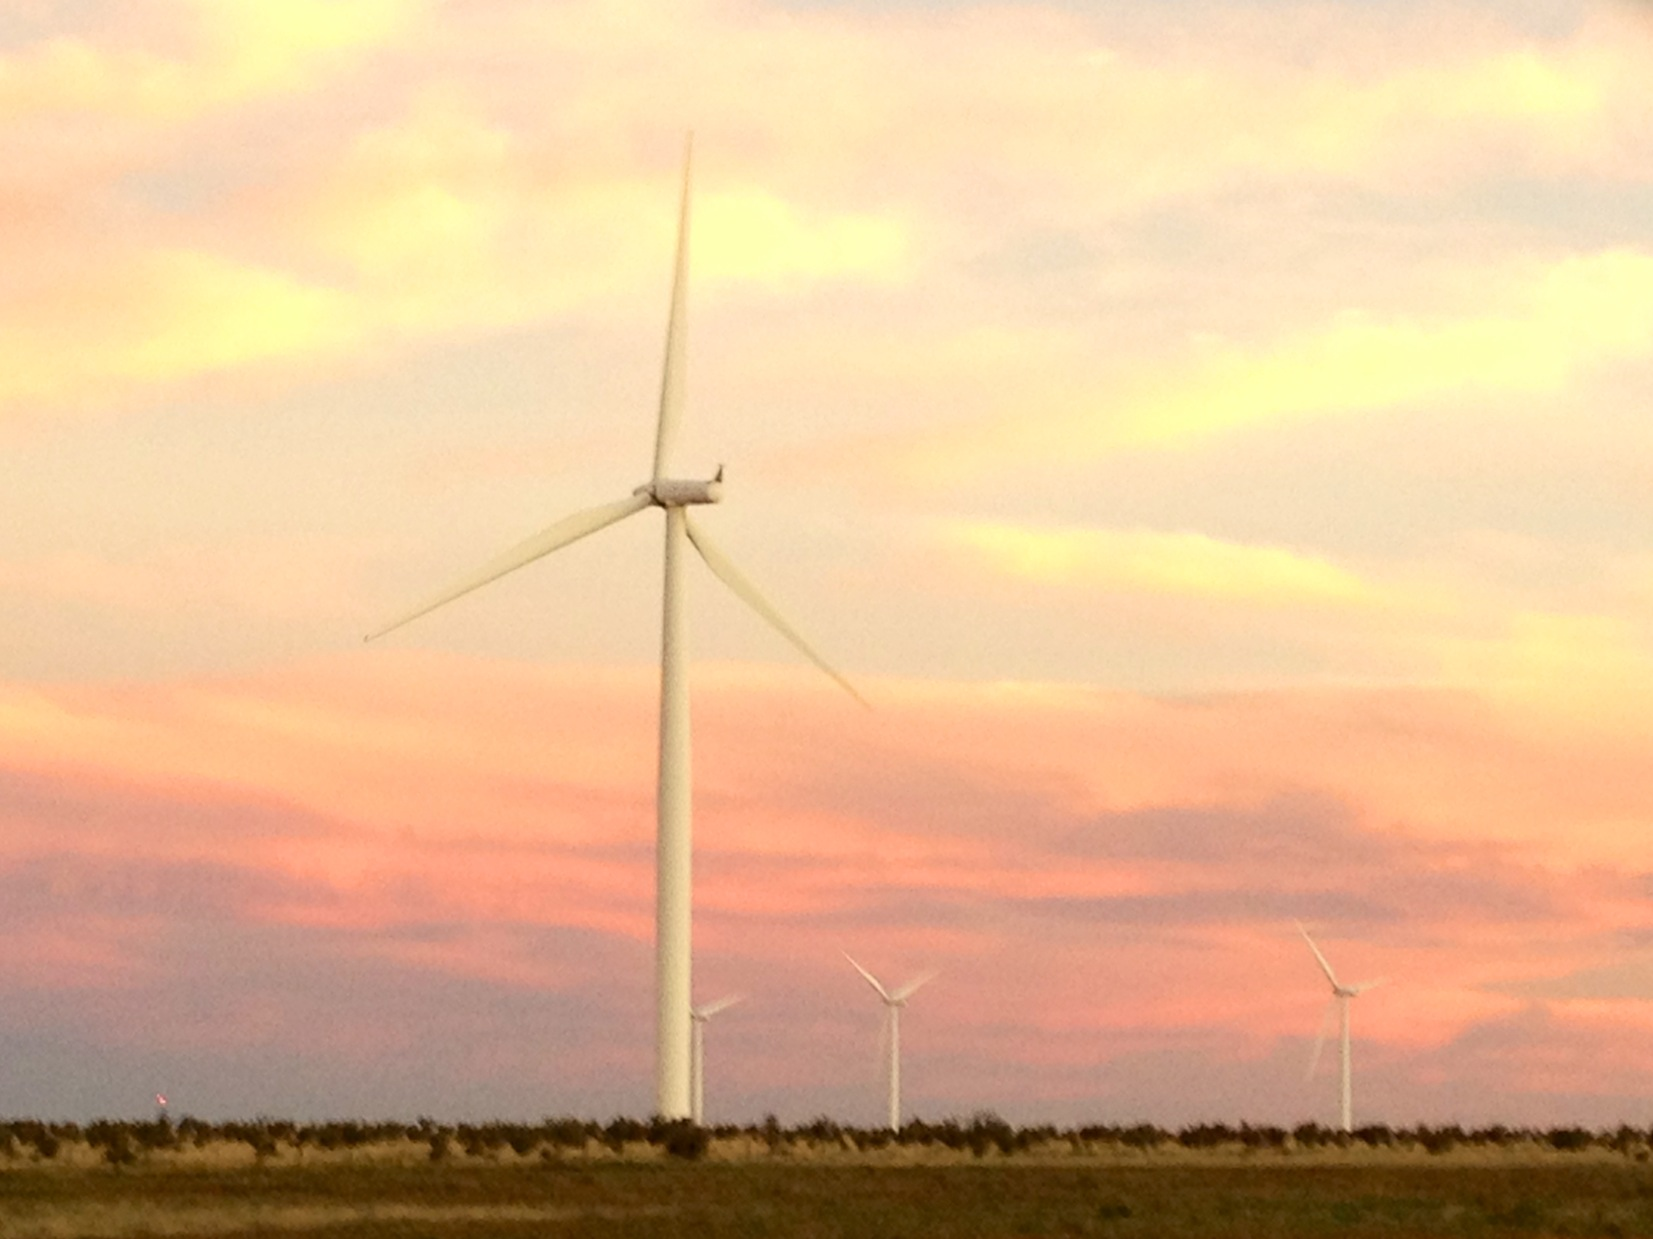 Wildorado Wind Farm